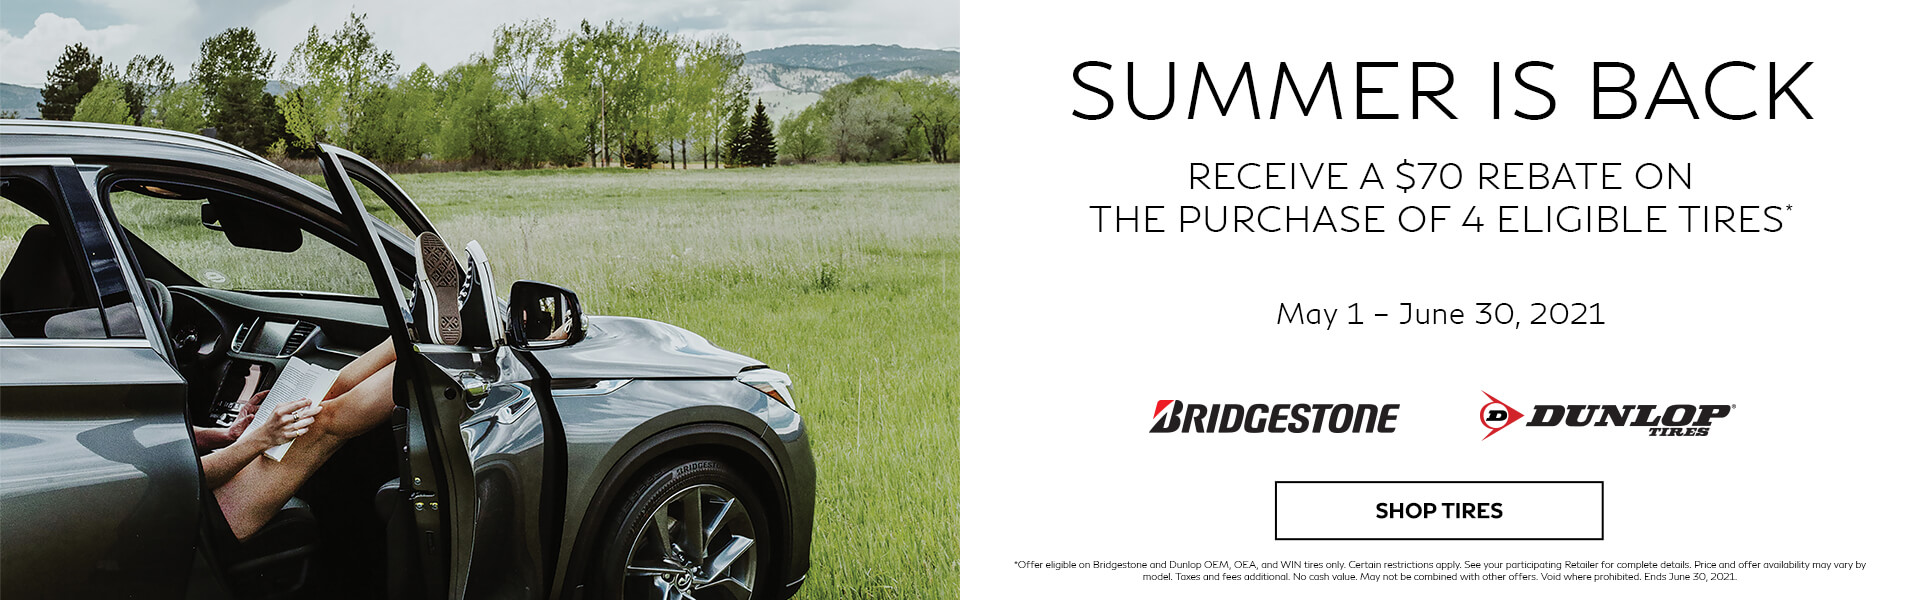 Receive a $70 rebate on the purchase of 4 eligible tires.